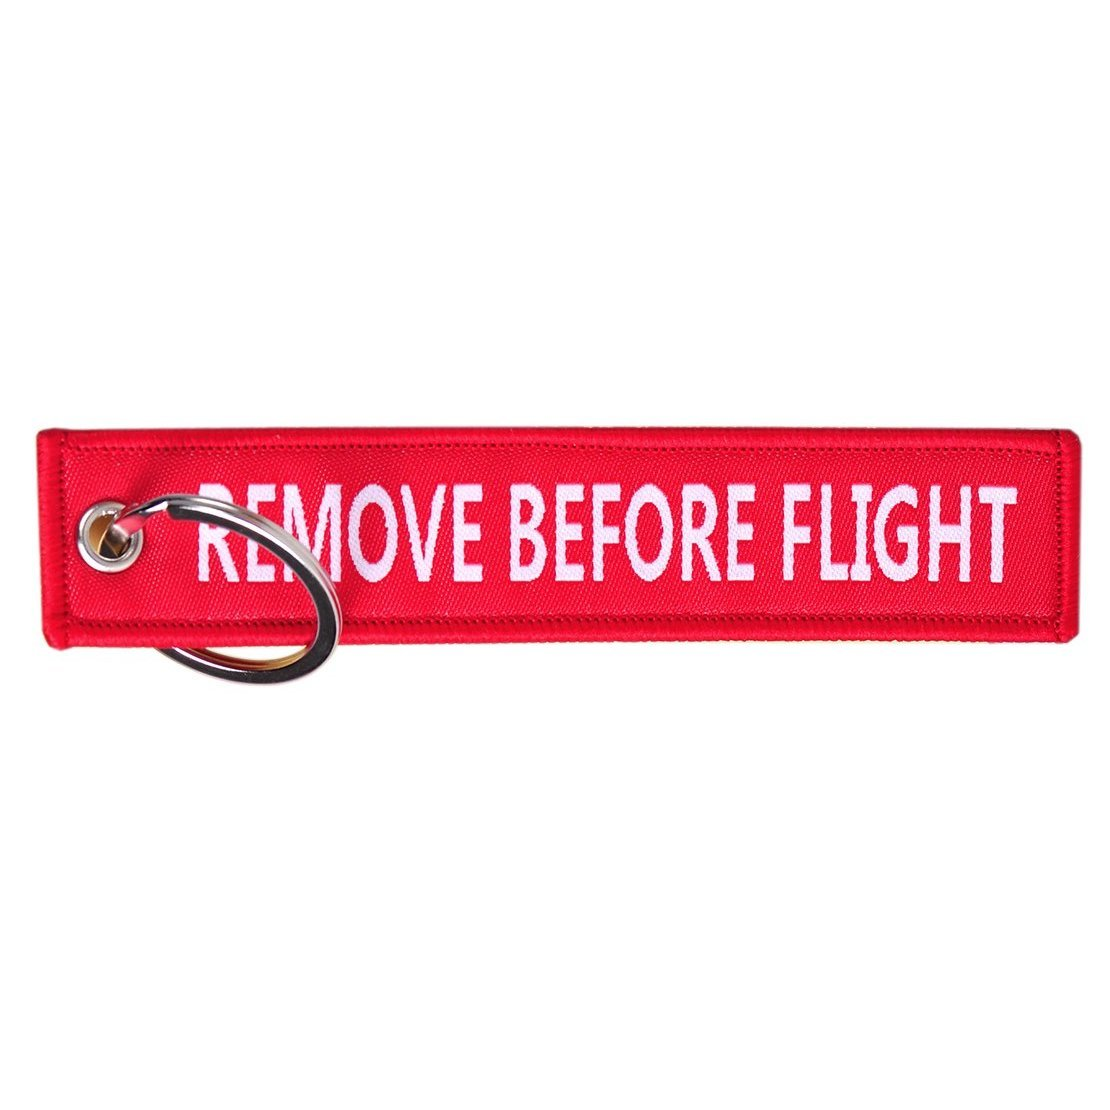 Remove Before Flight Key Tag Red Keychain Keyring - 1 PC